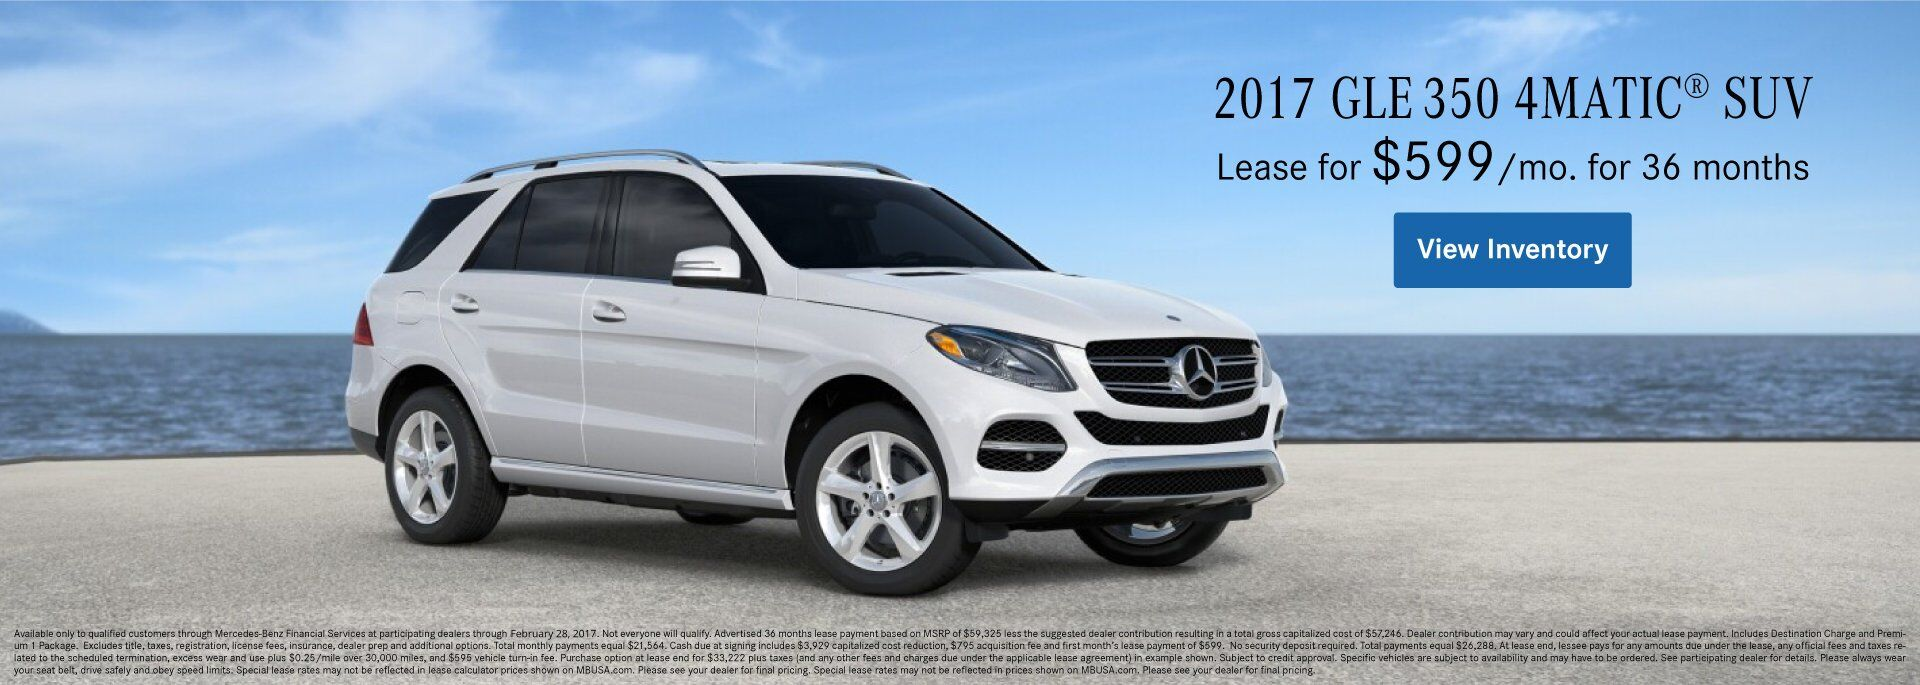 2017 GLE350 4MATIC® SUV Lease Offer